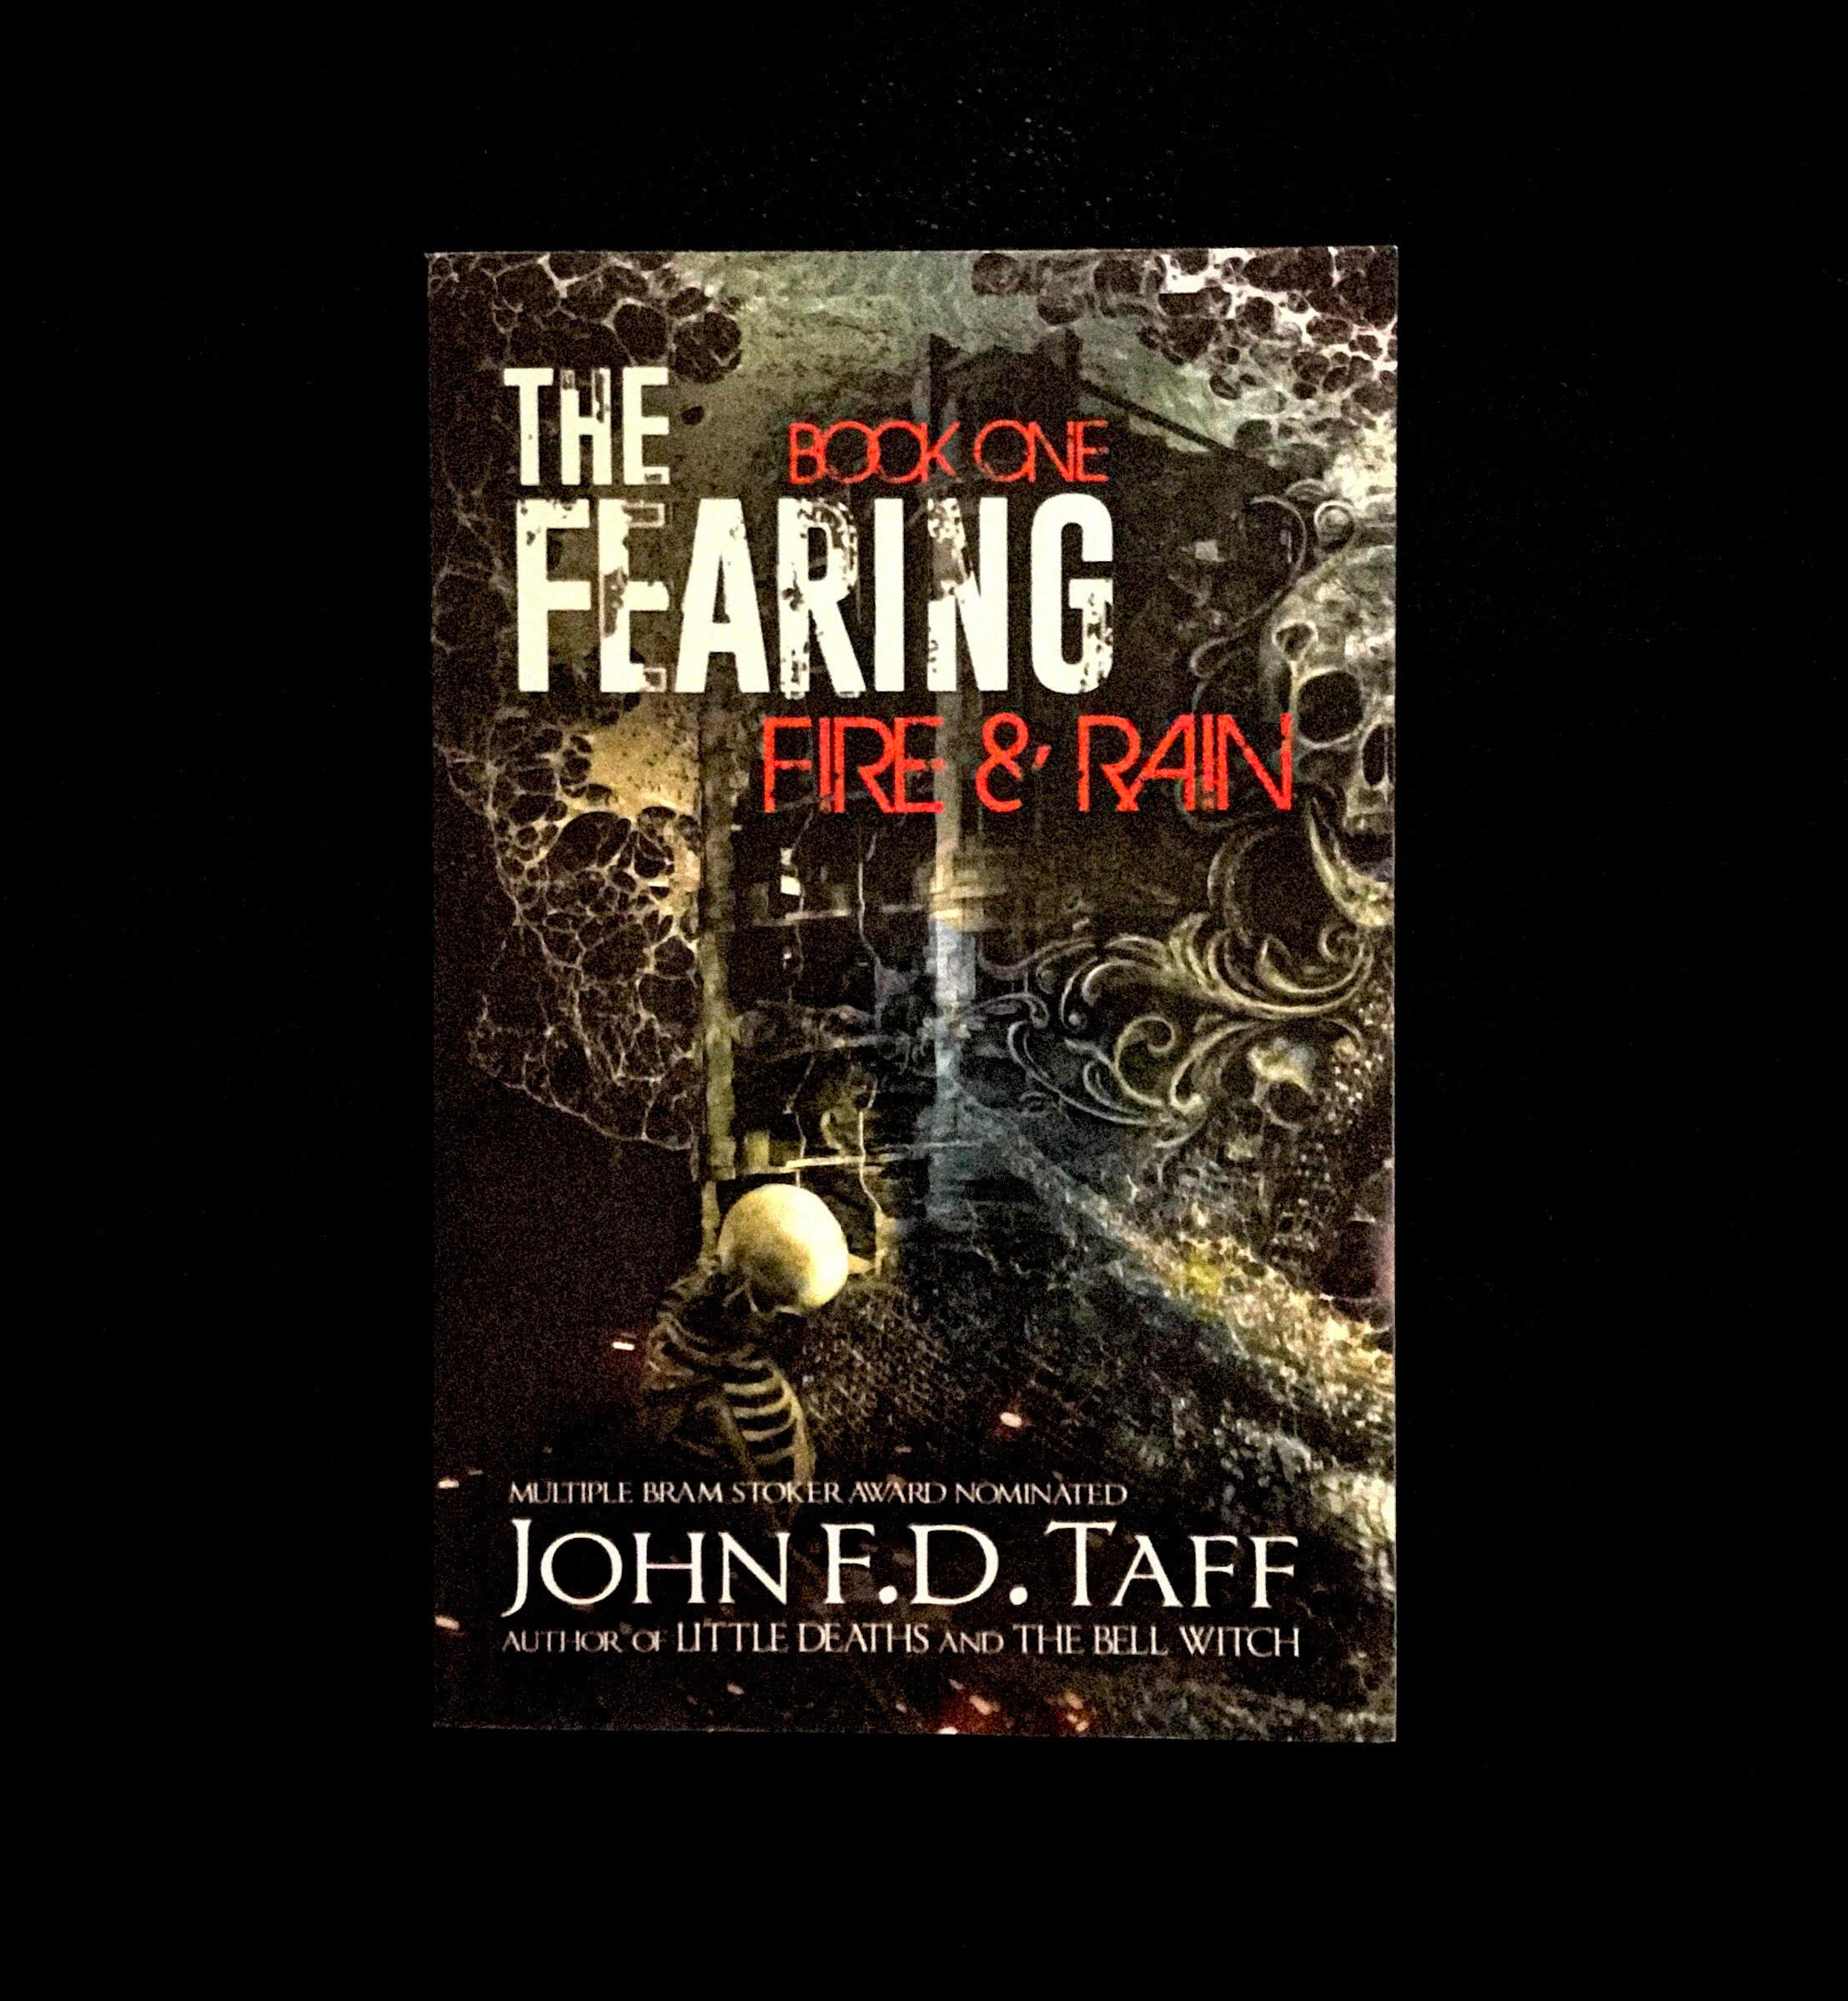 John's Review : The Fearing by John F. D. Taff